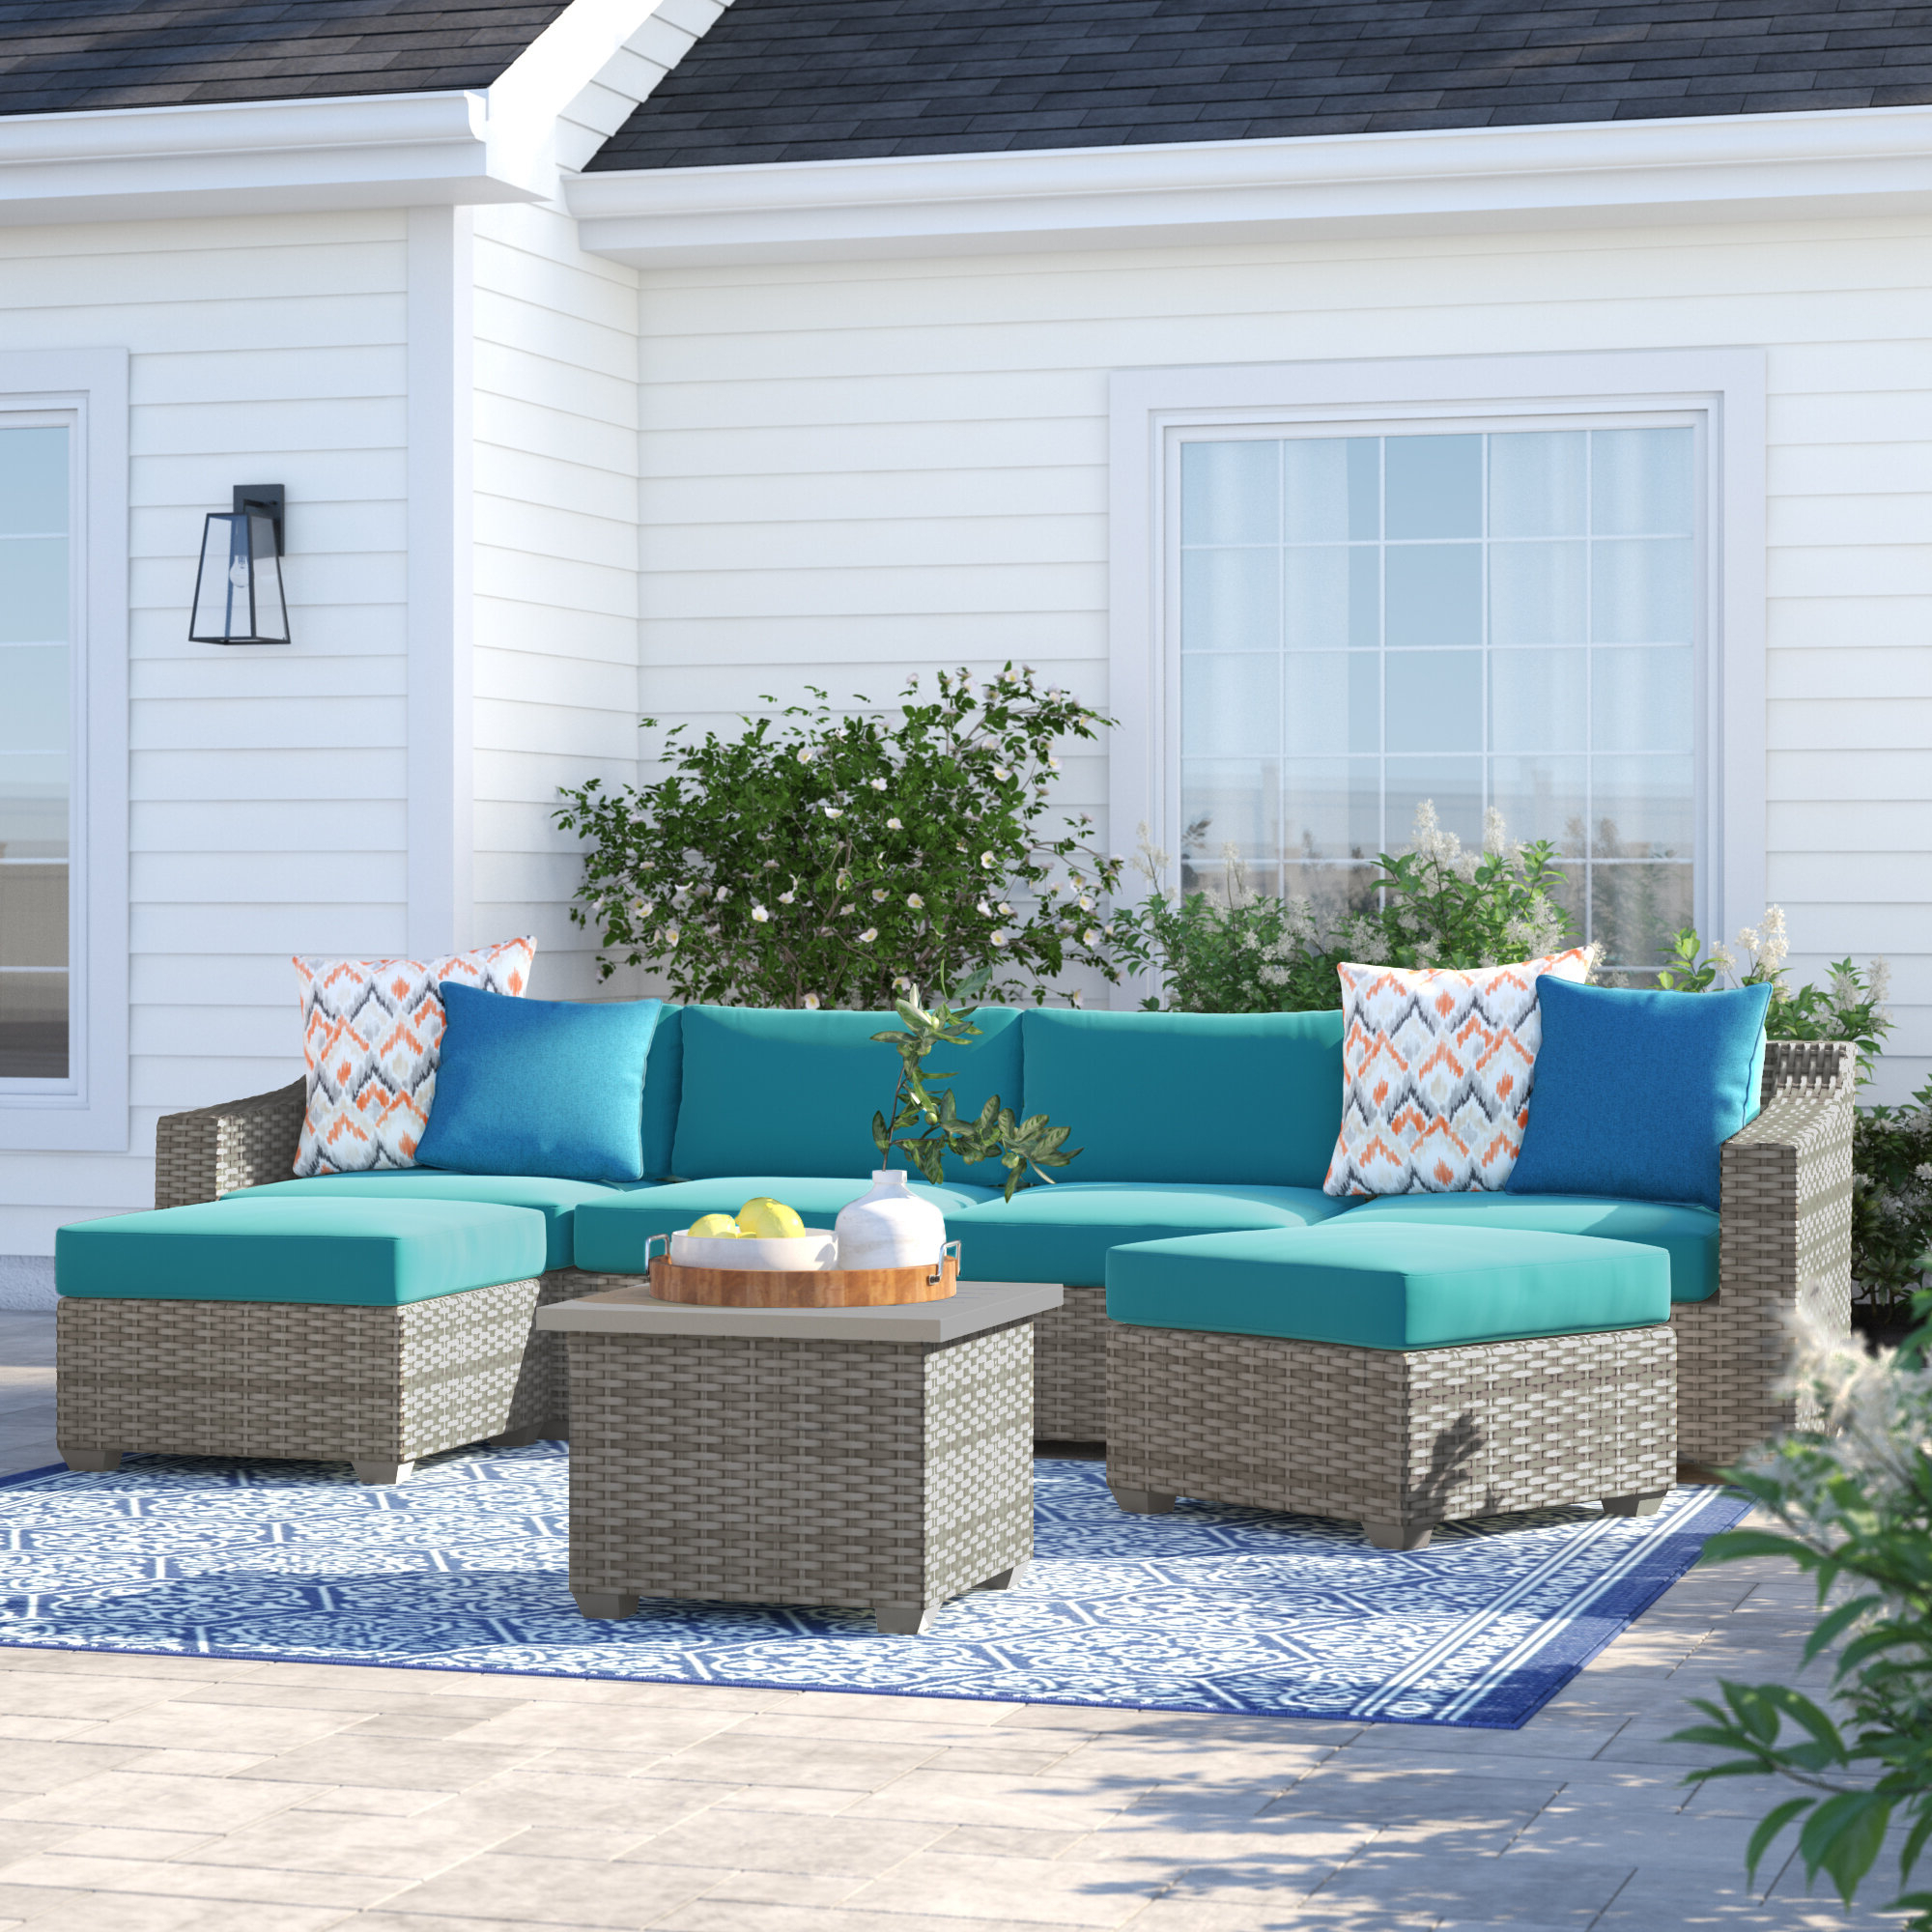 Best And Newest Falmouth 7 Piece Sectional Seating Group With Cushions With Falmouth Patio Sofas With Cushions (View 1 of 20)